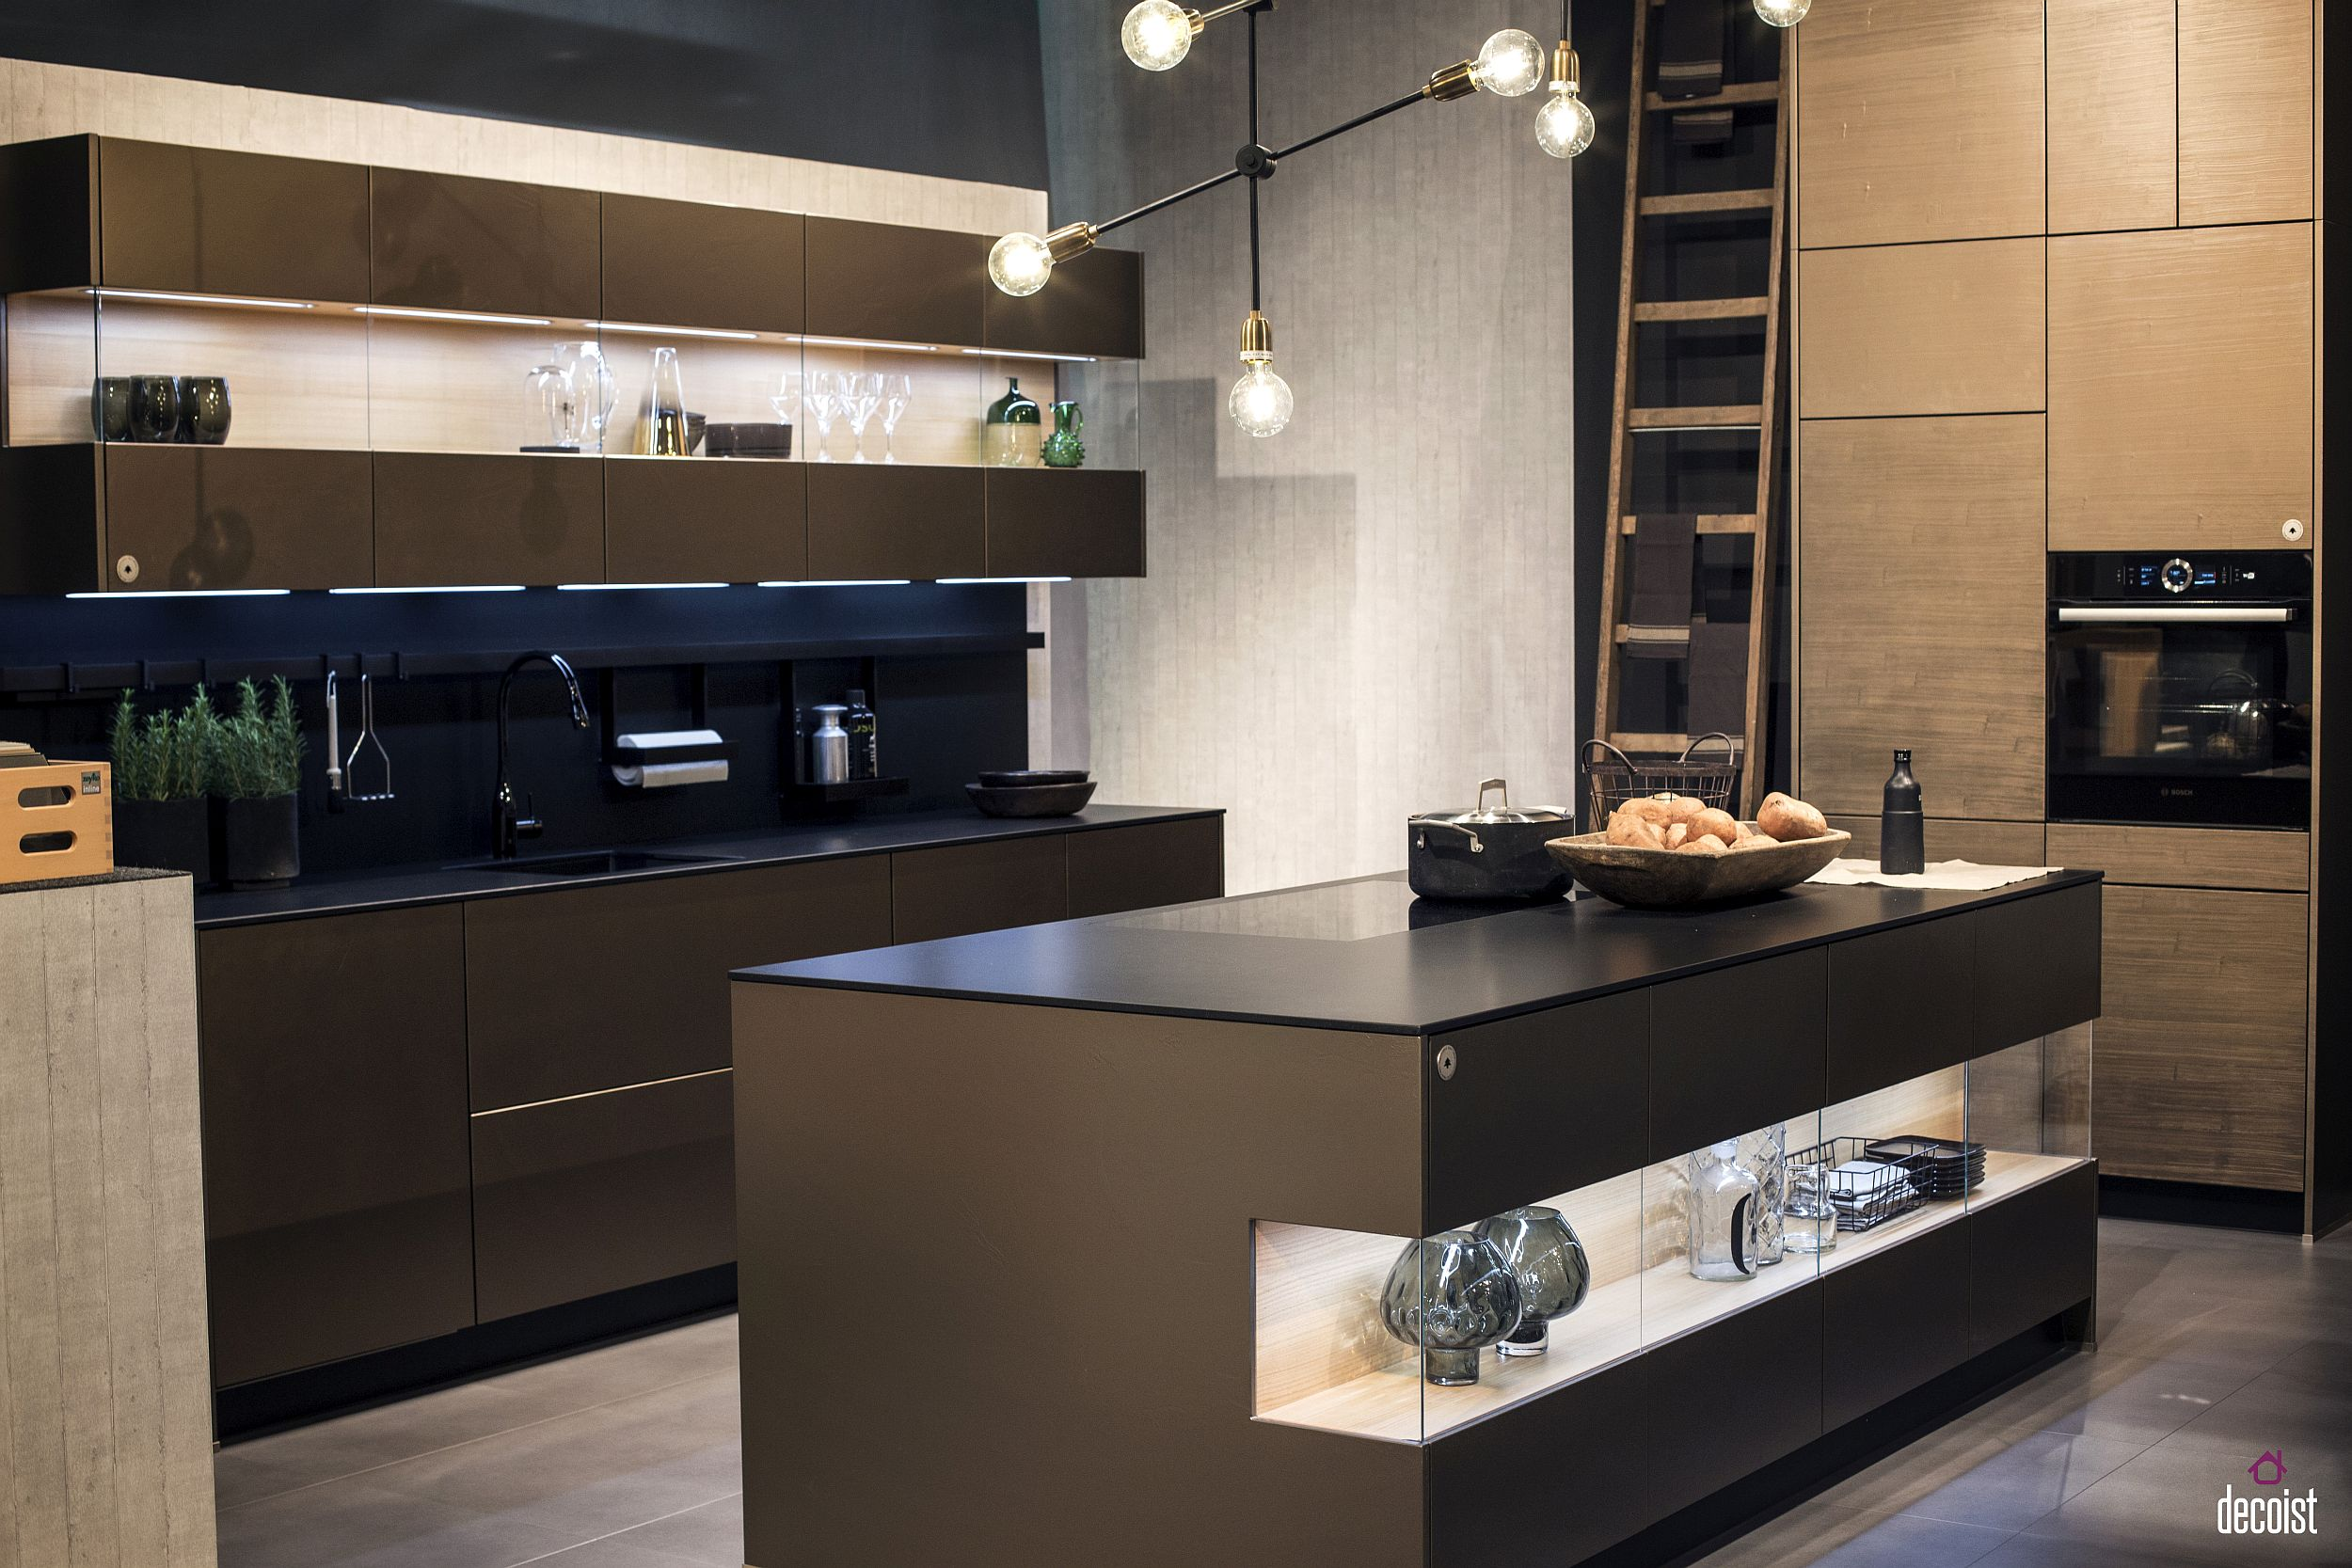 Wall-mounted cabinets from Zeyko also offer ample display space